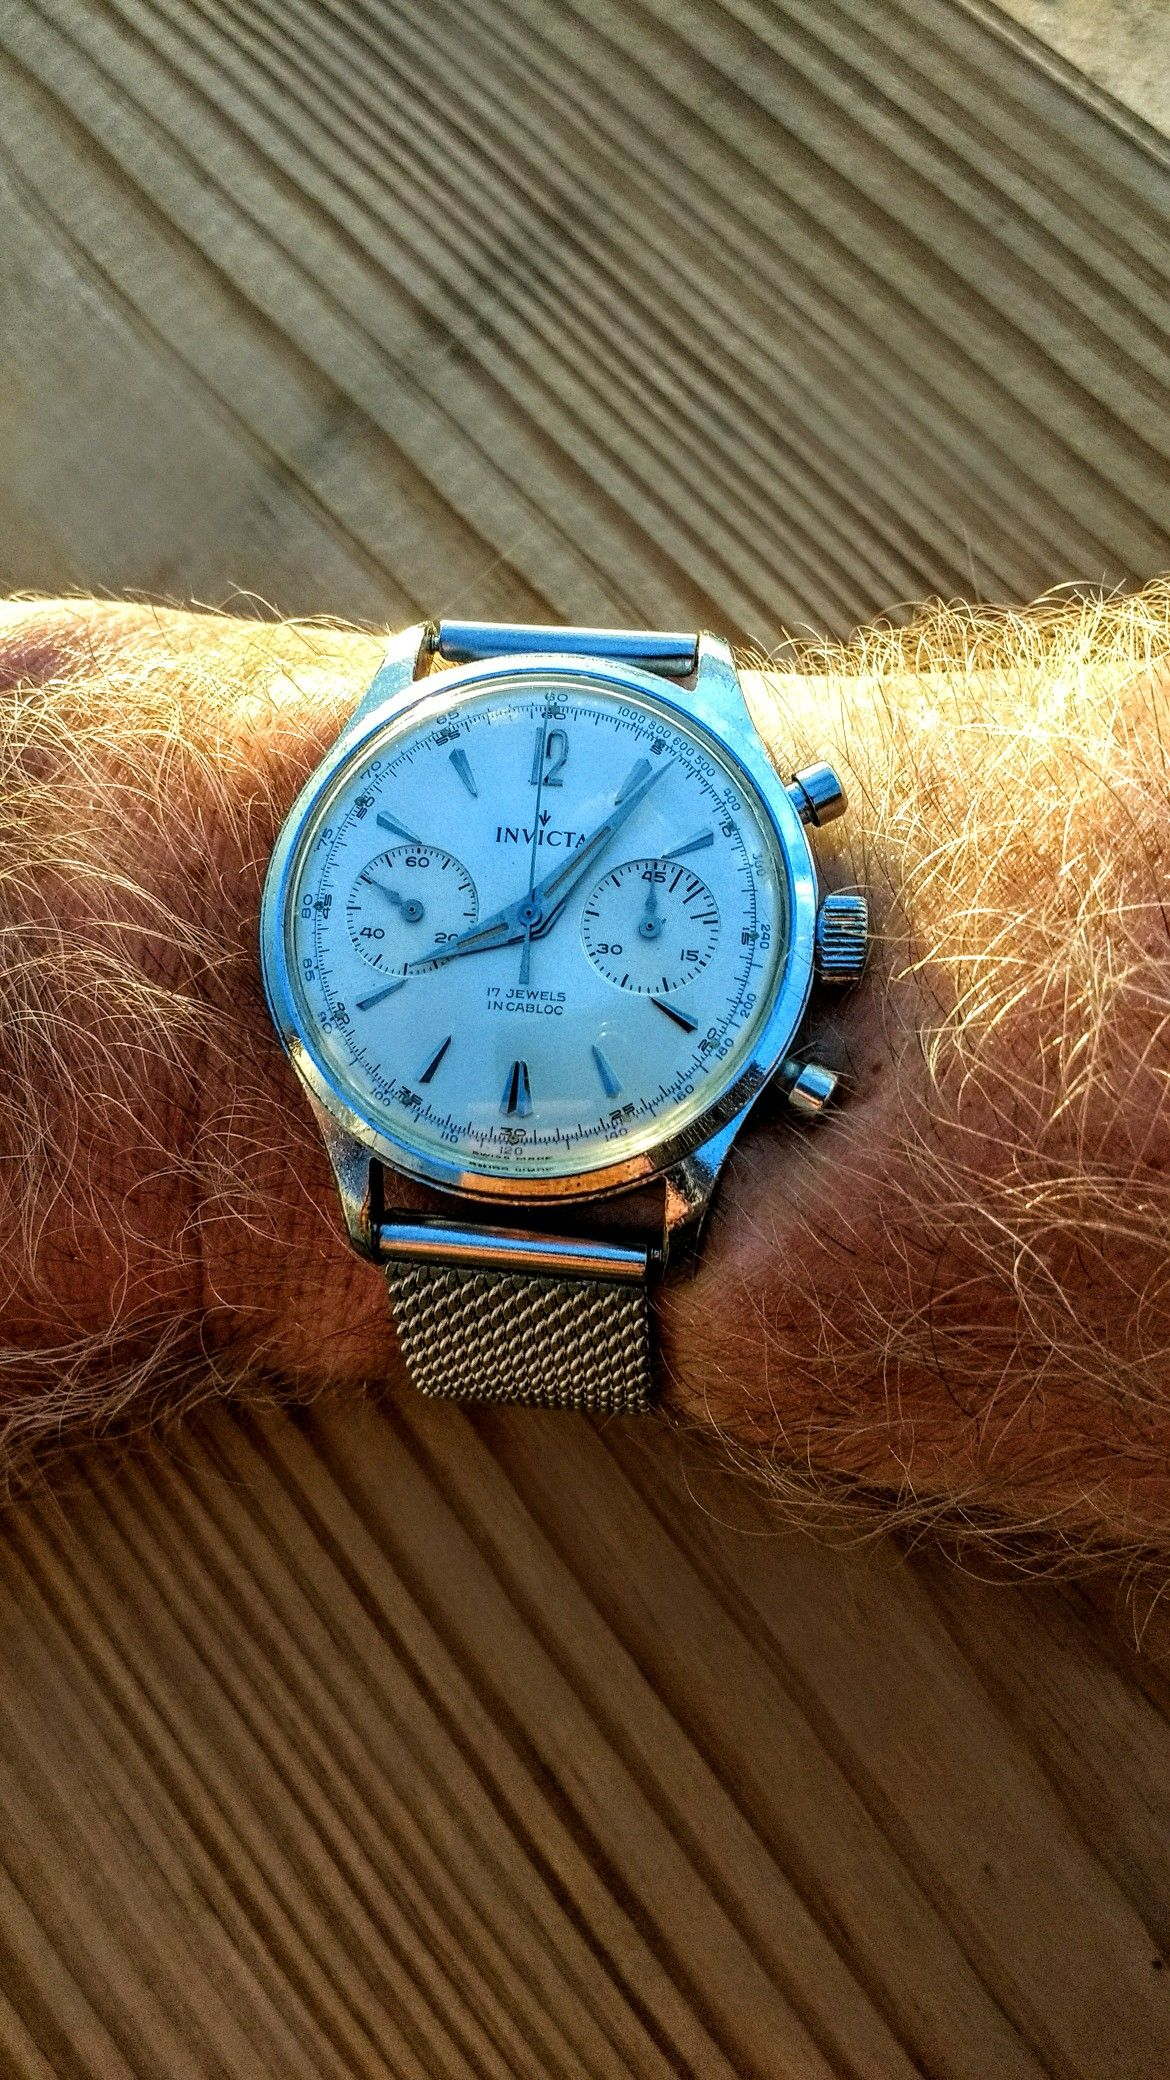 Rare 1960 S Invicta Chronograph With Images Watches